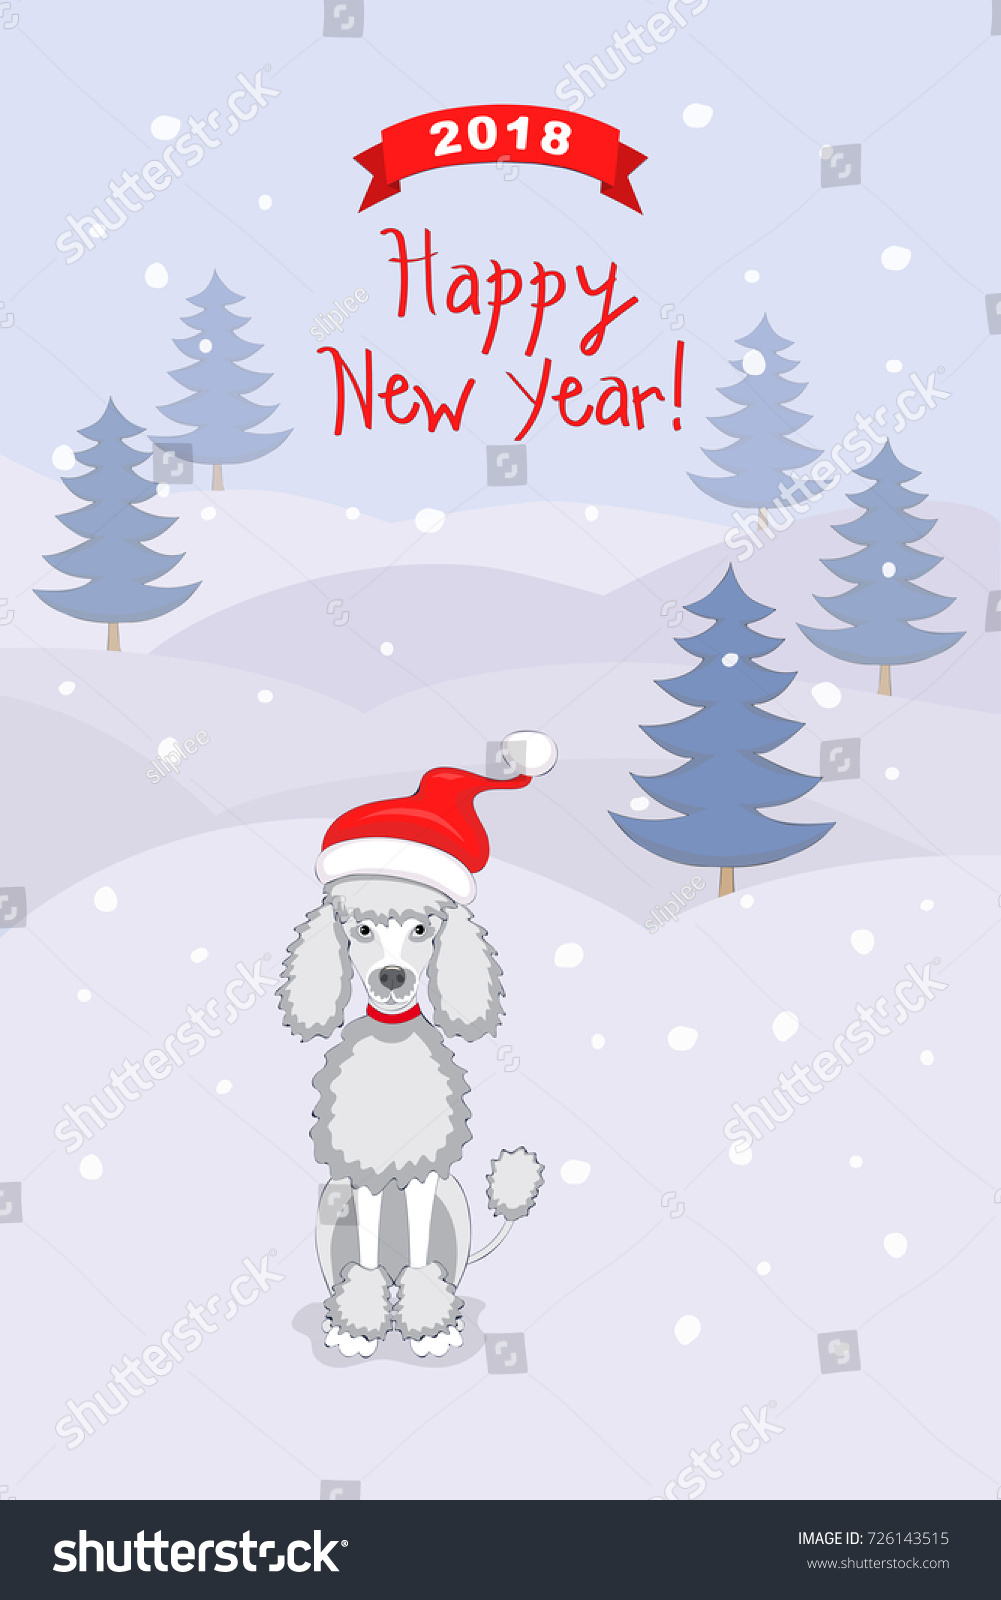 New Year 2018 Card Cartoon Poodle Stock Illustration 726143515 ...